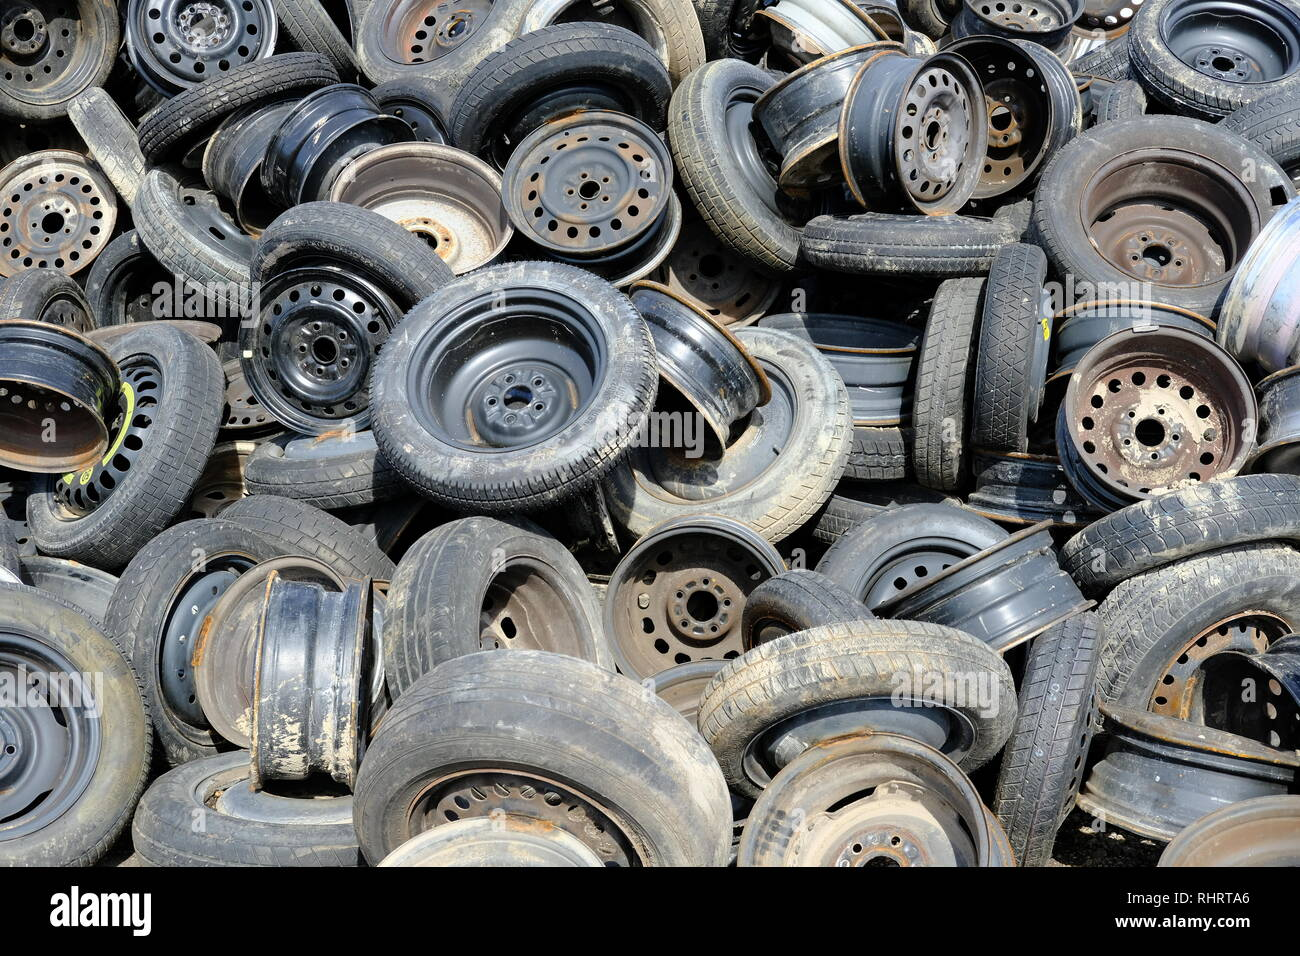 Randomly placed used or discarded tires with rims or wheels